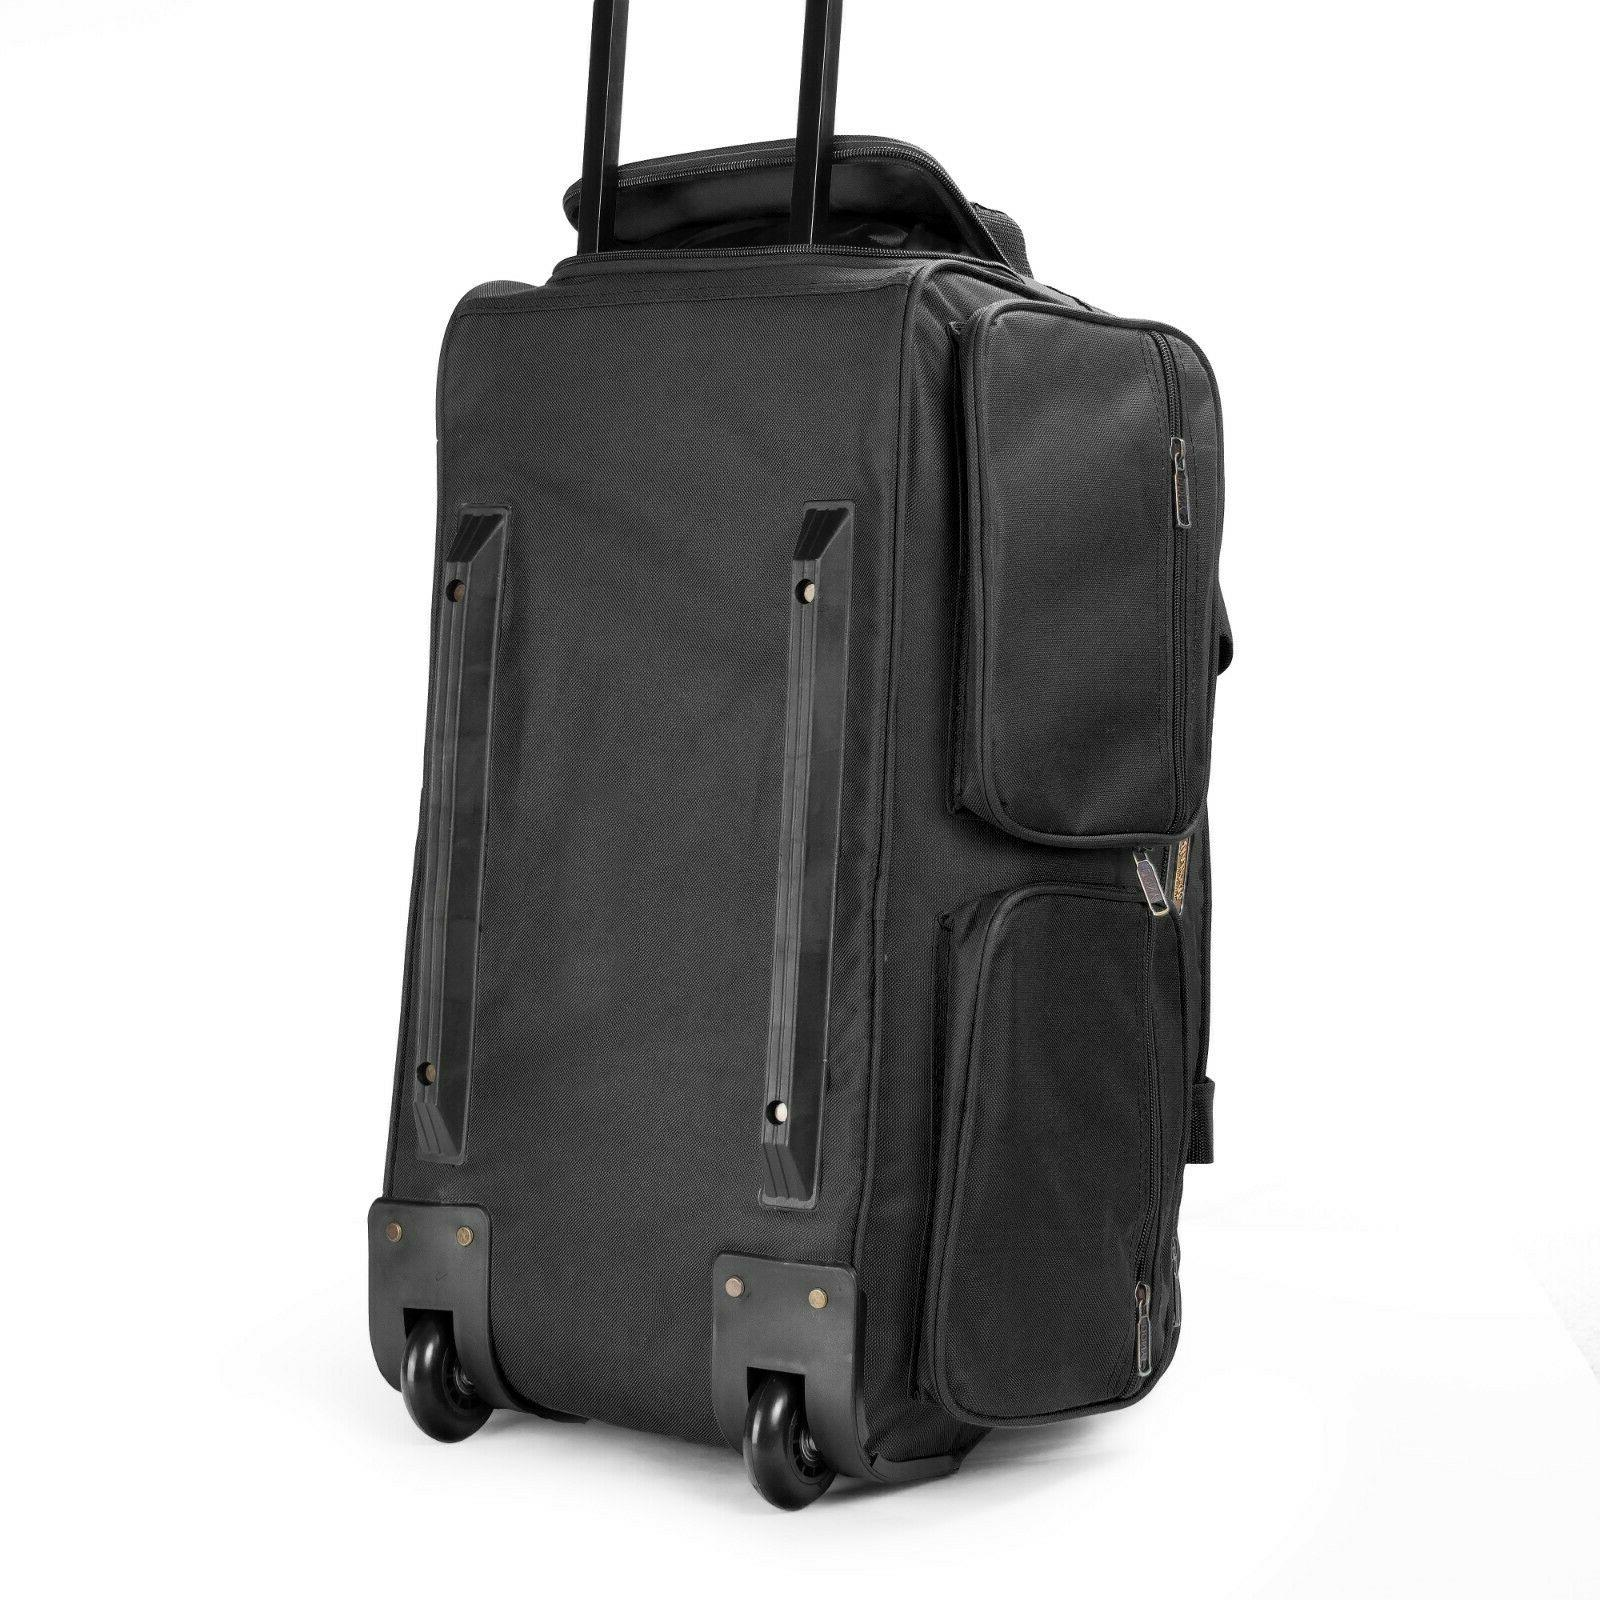 "Luggage 29"" Rolling Carry OnSuitcase"